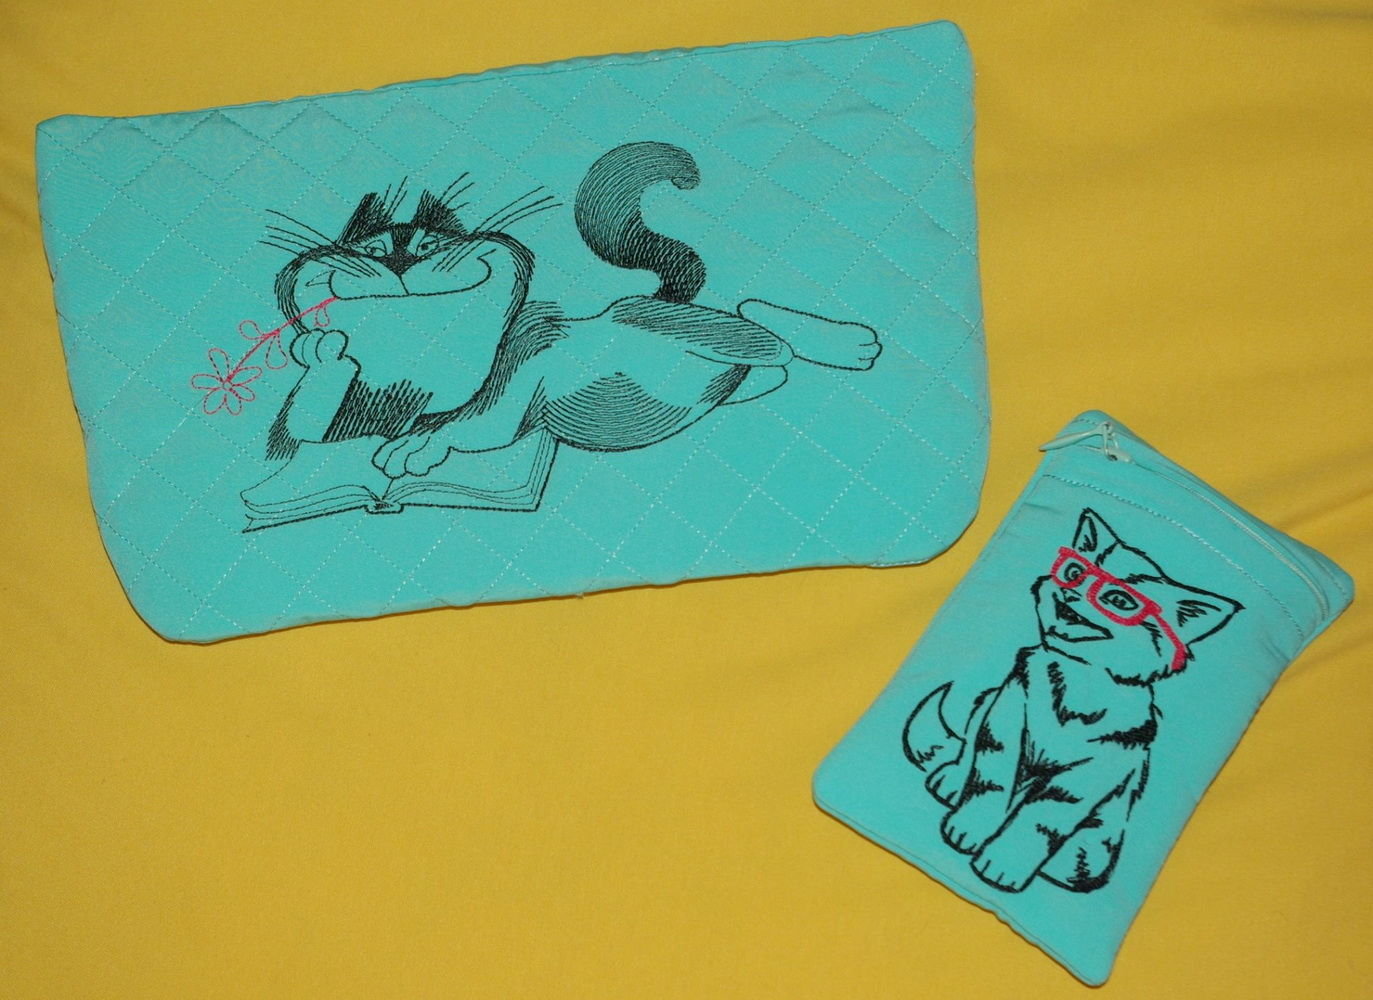 Green coin purses embroidered with cats